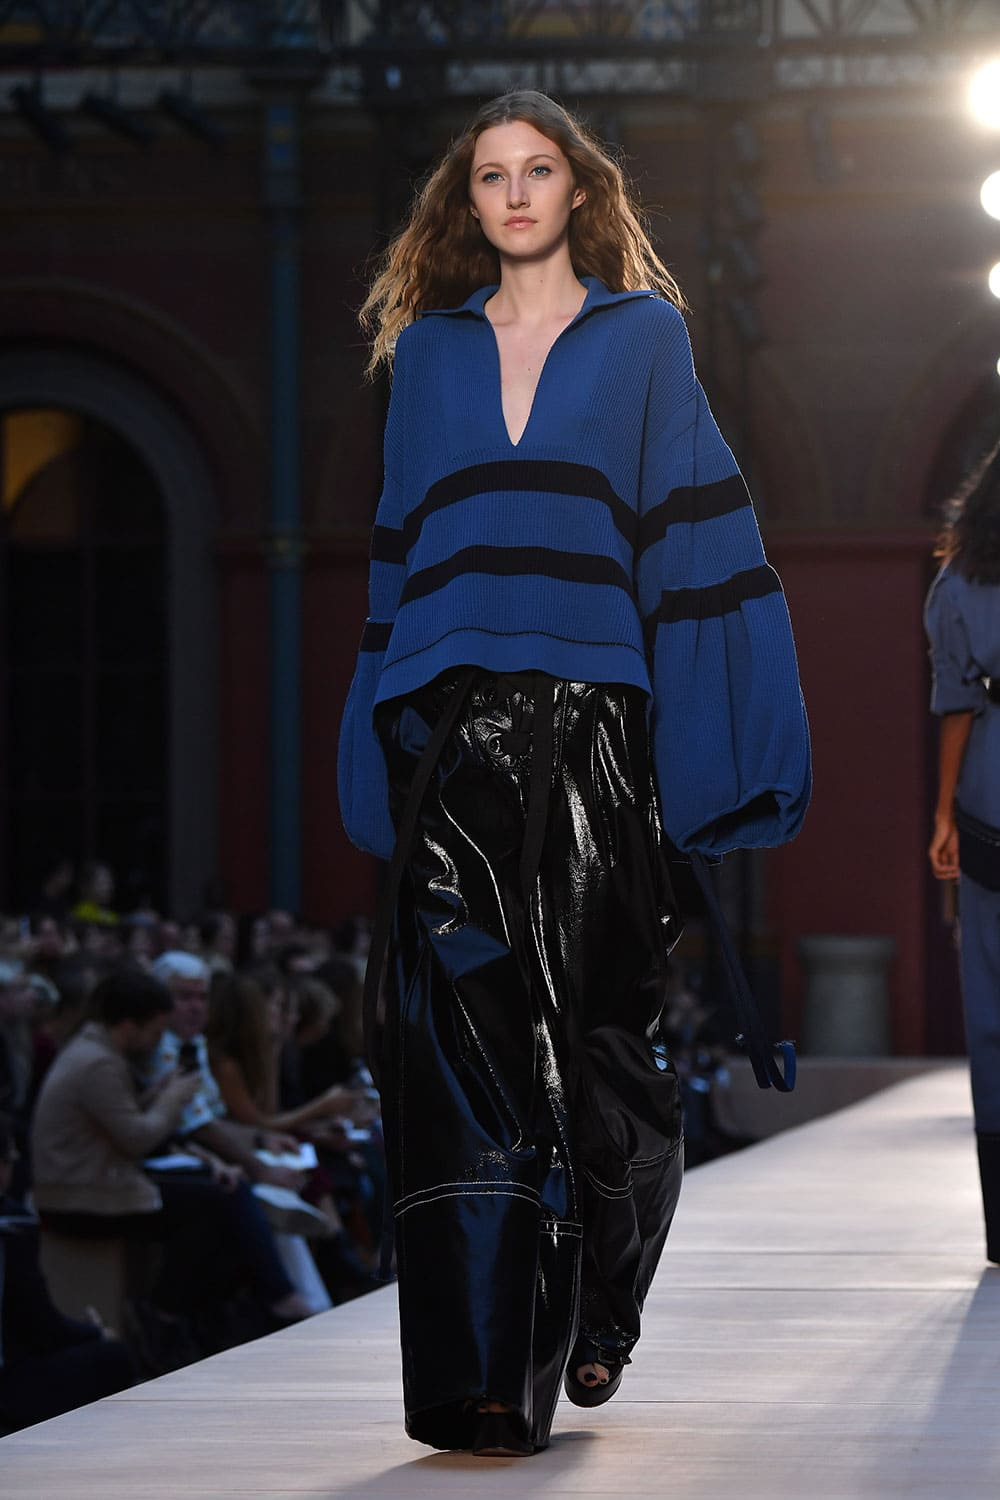 A Model walk the runway during the Sonia Rykiel show as part of the Paris Fashion Week Womenswear Spring/Summer in Paris, France